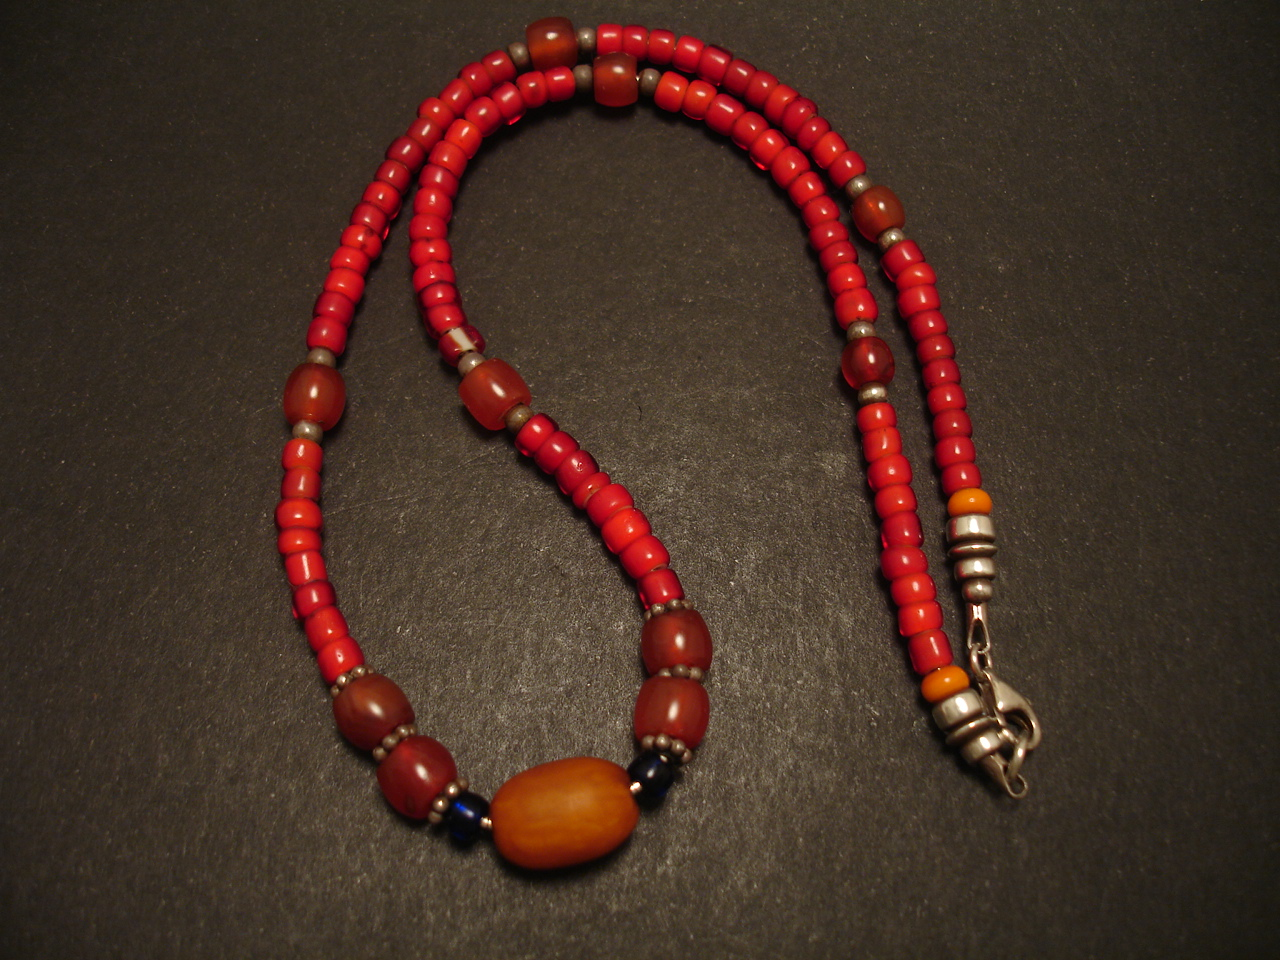 Beads Old Rare Amber Carnelian Red Glass Necklace Christopher William Sydney Australia Antique Ruby Coral And Tribal Jewellery